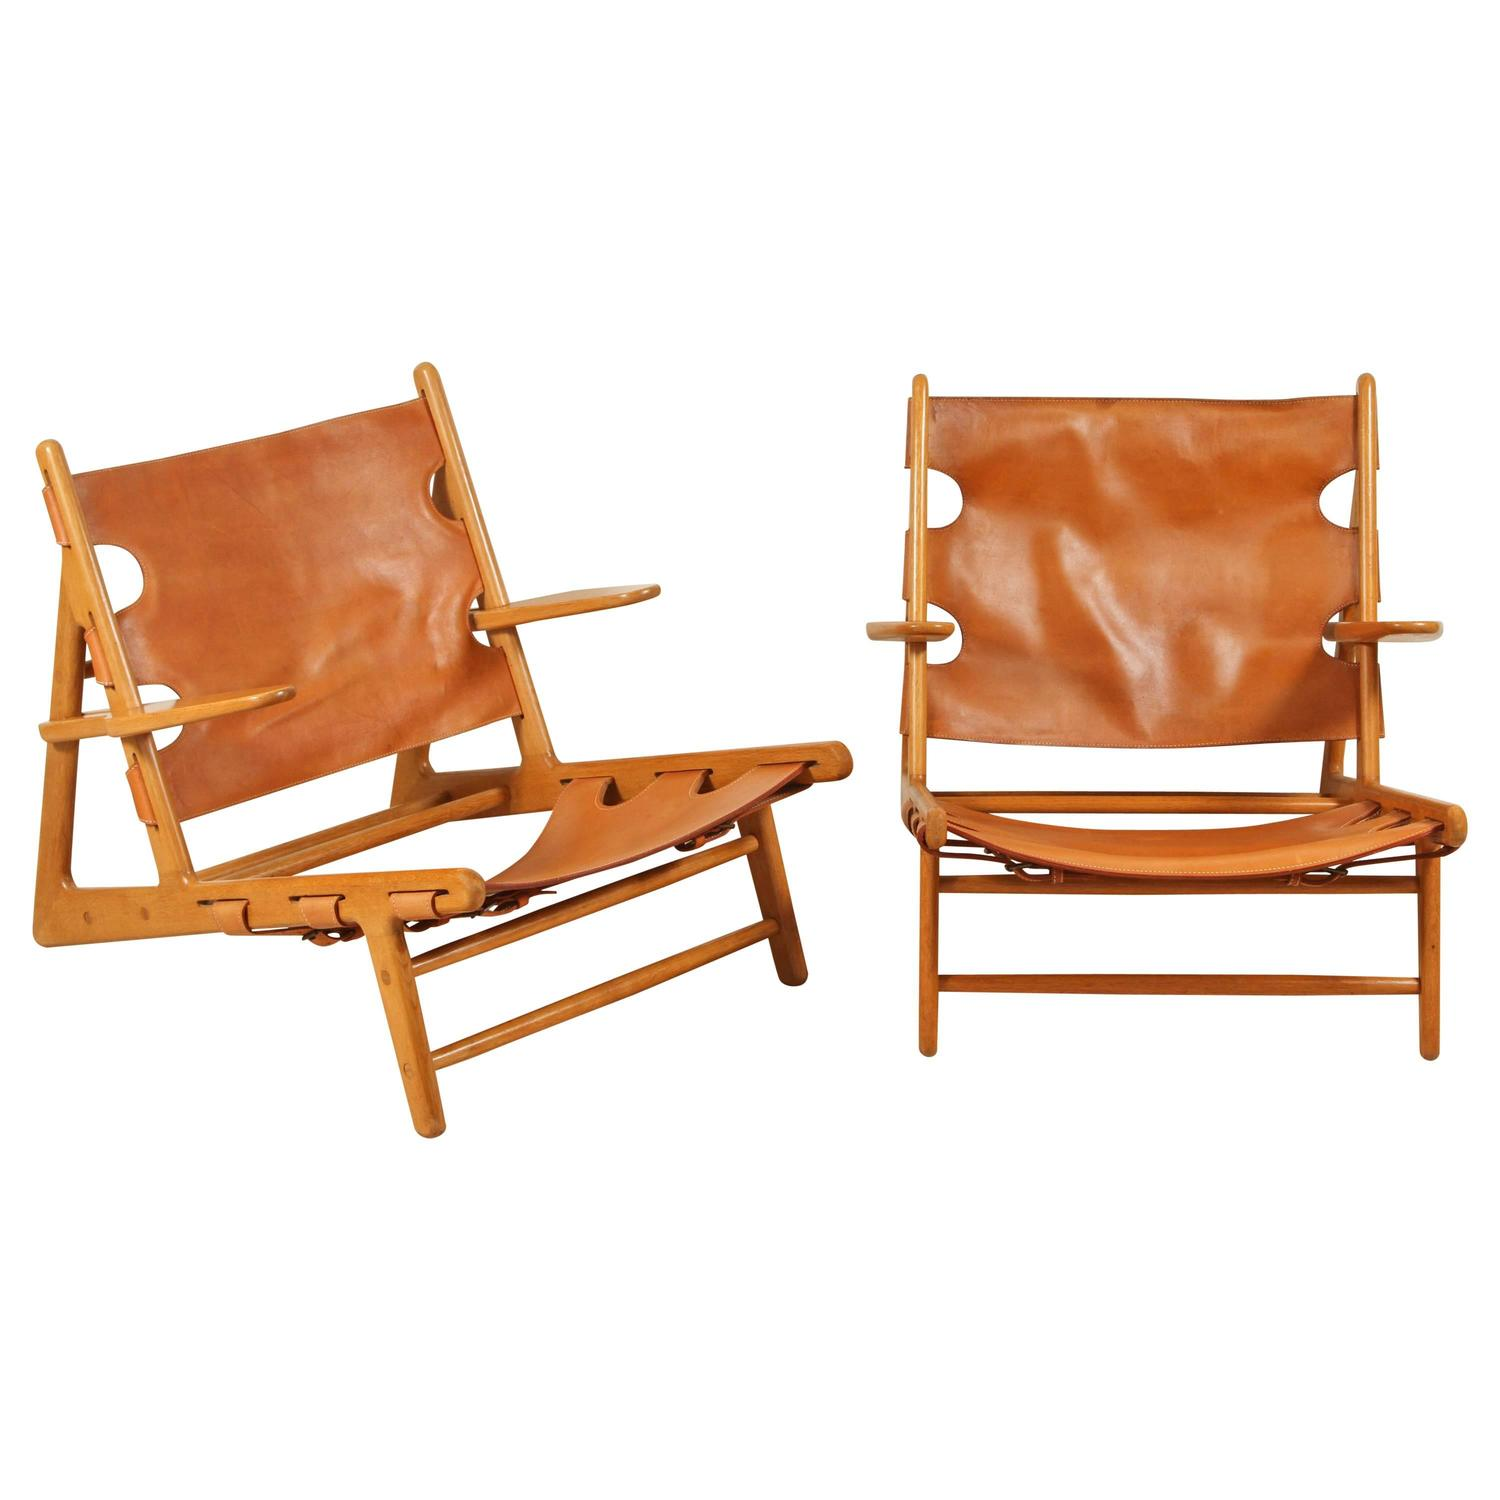 Pair of Leather Hunting Chairs by B¸rge Mogensen at 1stdibs